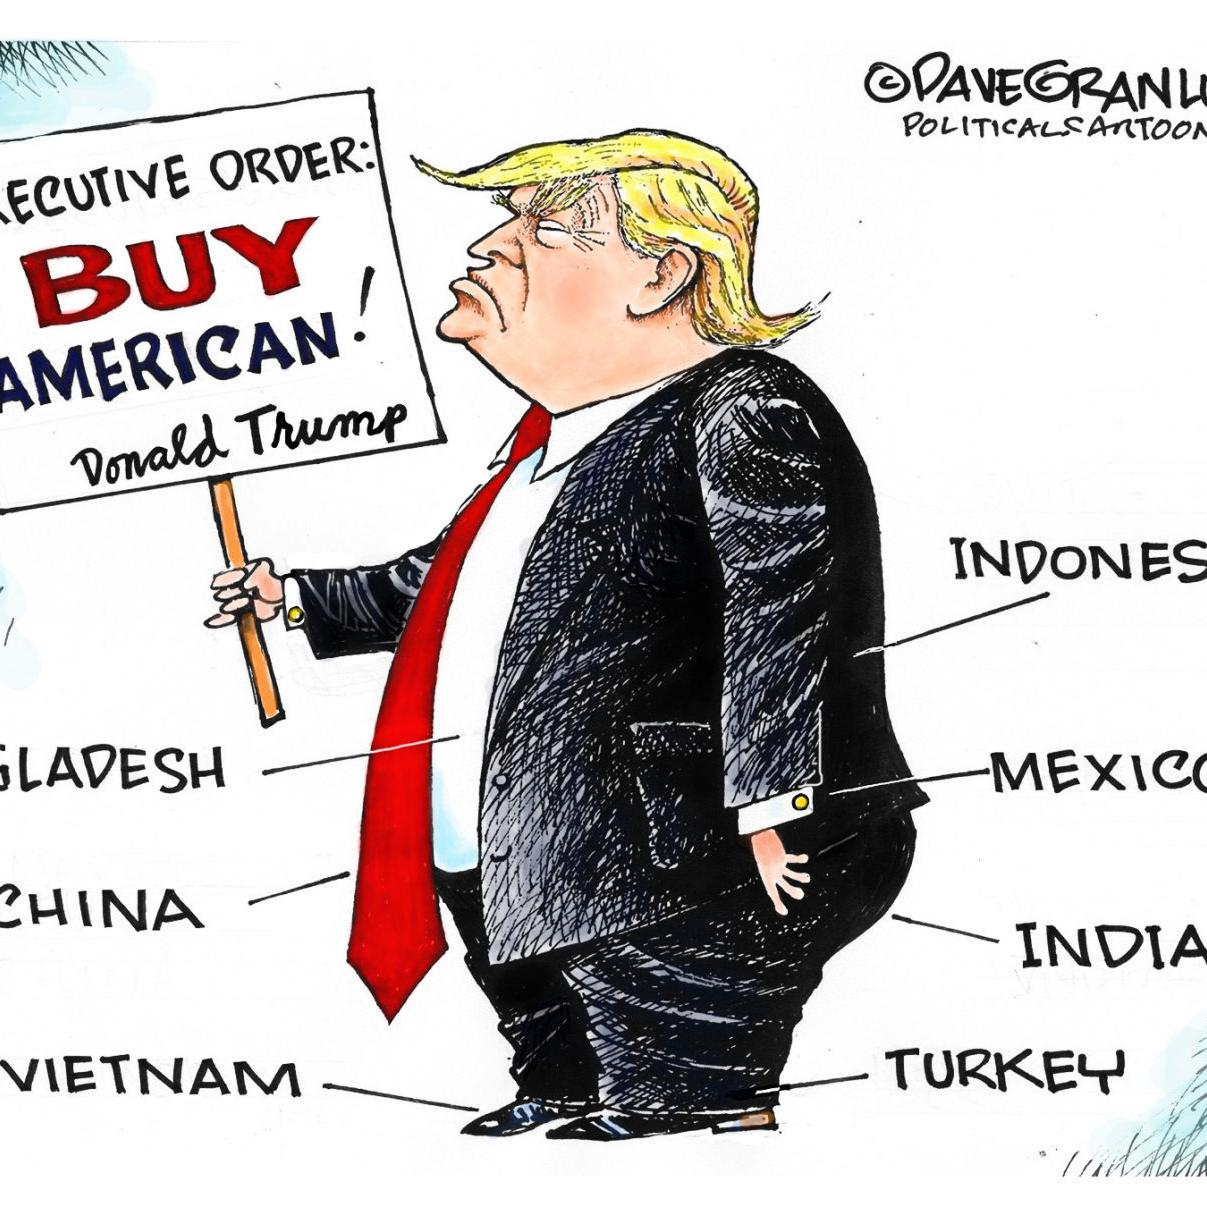 Trump Doesn T Buy American In Dave Granlund S Latest Political Cartoon Opinion Chippewa Com